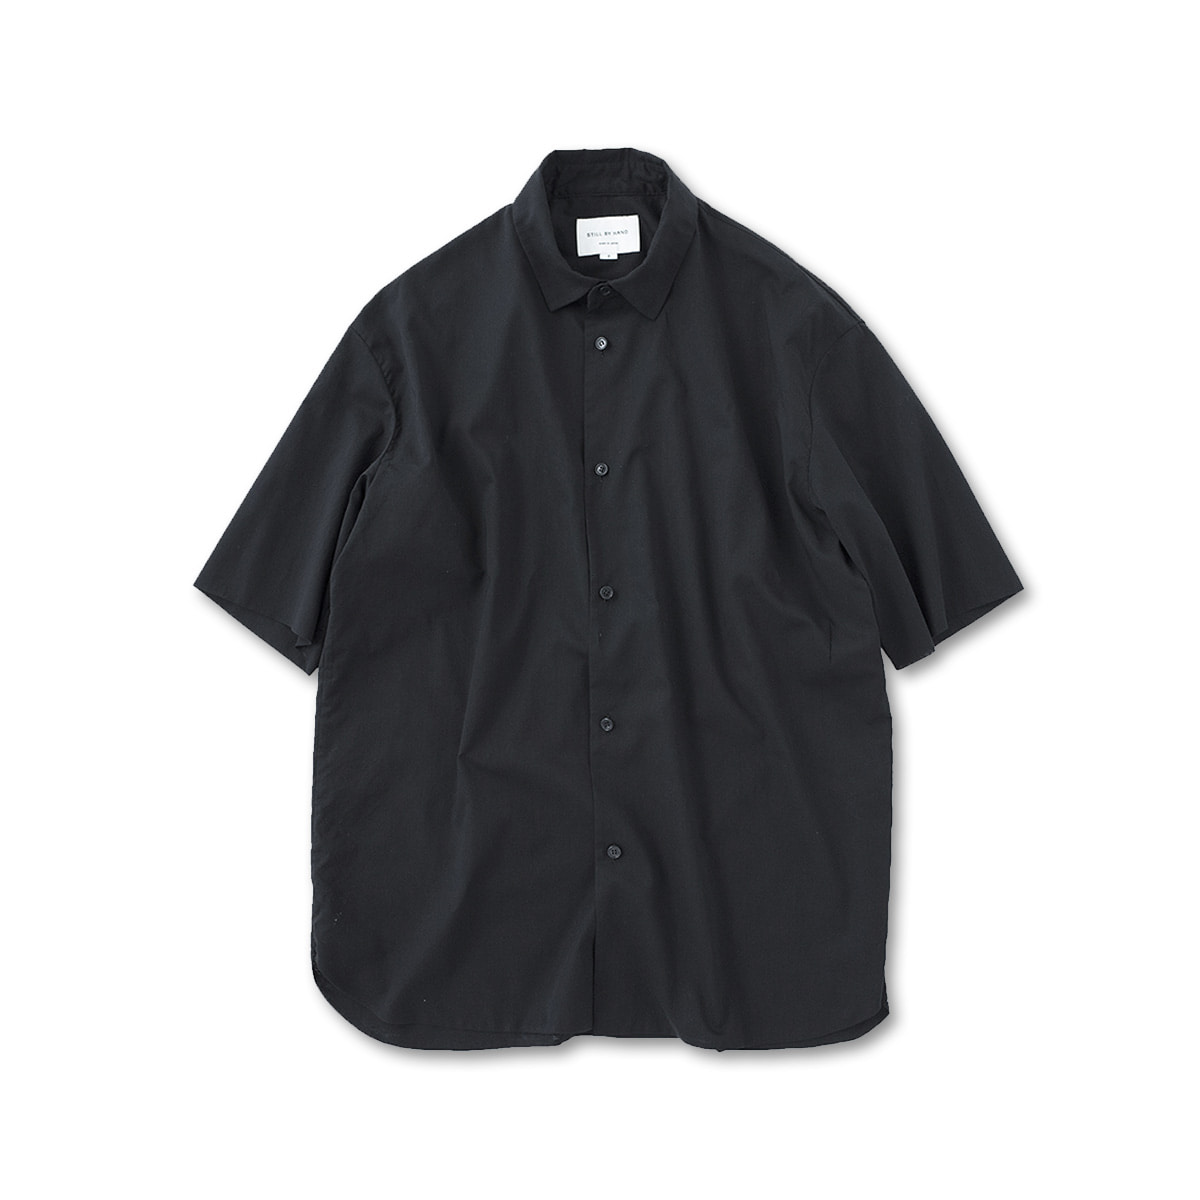 [STILL BY HAND] SH08201OS - LAYERED SHIRT 'BLACK'